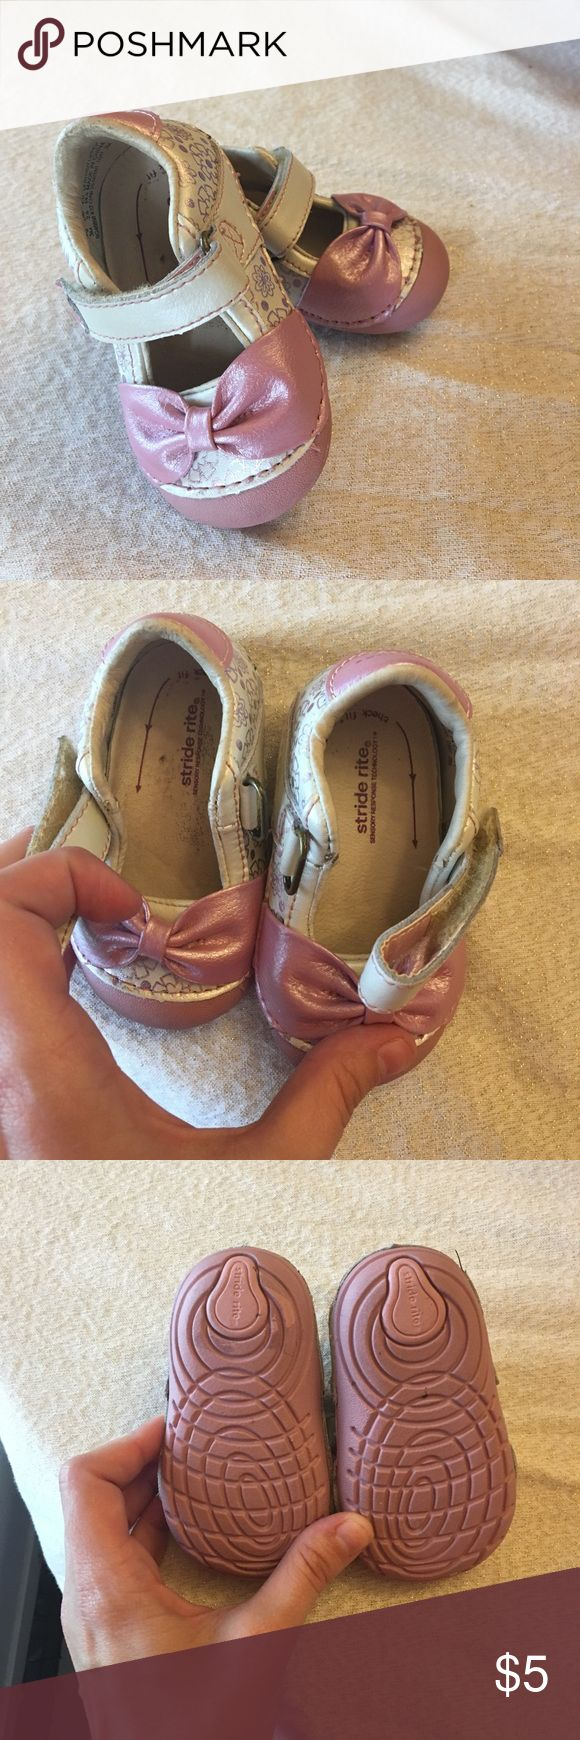 STRIDE RIGHT SHOES! GIRL Stride right sensory response technology, premium leather lining shoes for your little girl . Size 3m USA . Pink n cream very cute, has some use , good condition. Insertable pads , also size check on these pads to know when baby needs new shoes, great for beginner walkers! Stride Rite Shoes Baby & Walker